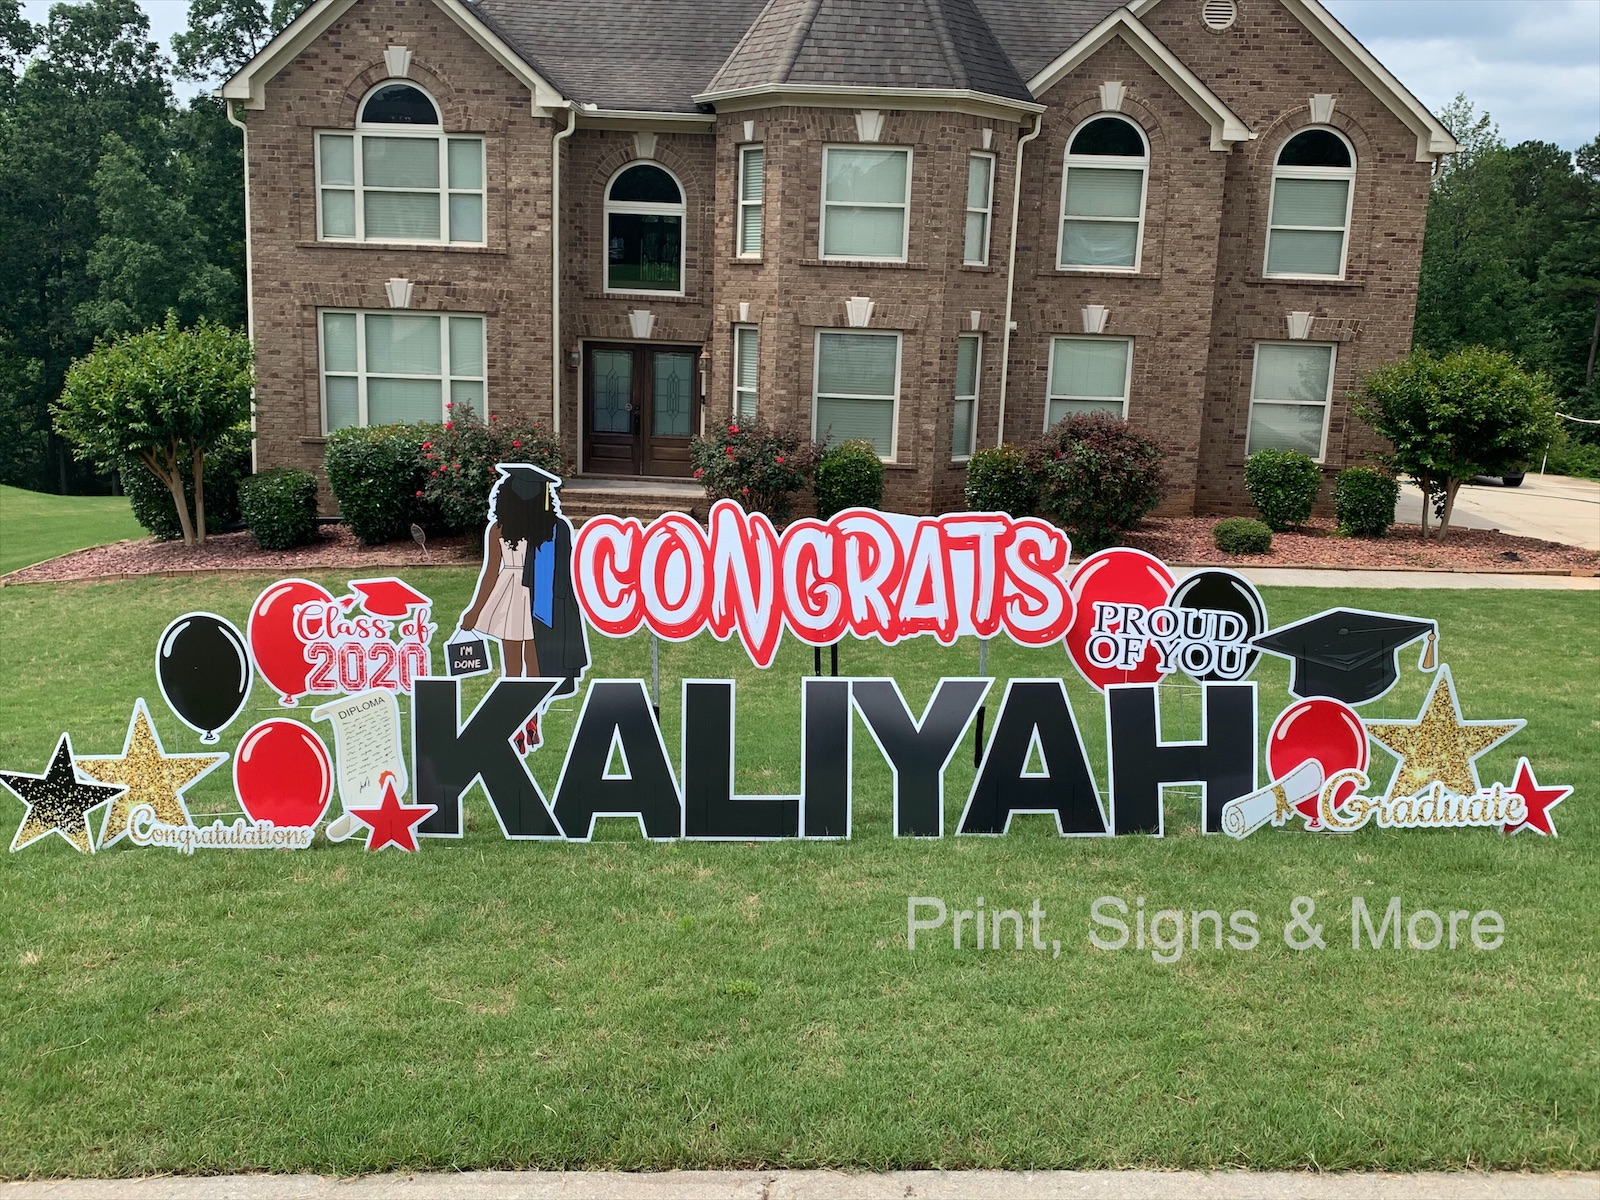 Graduation Greeting using large red congrats banner